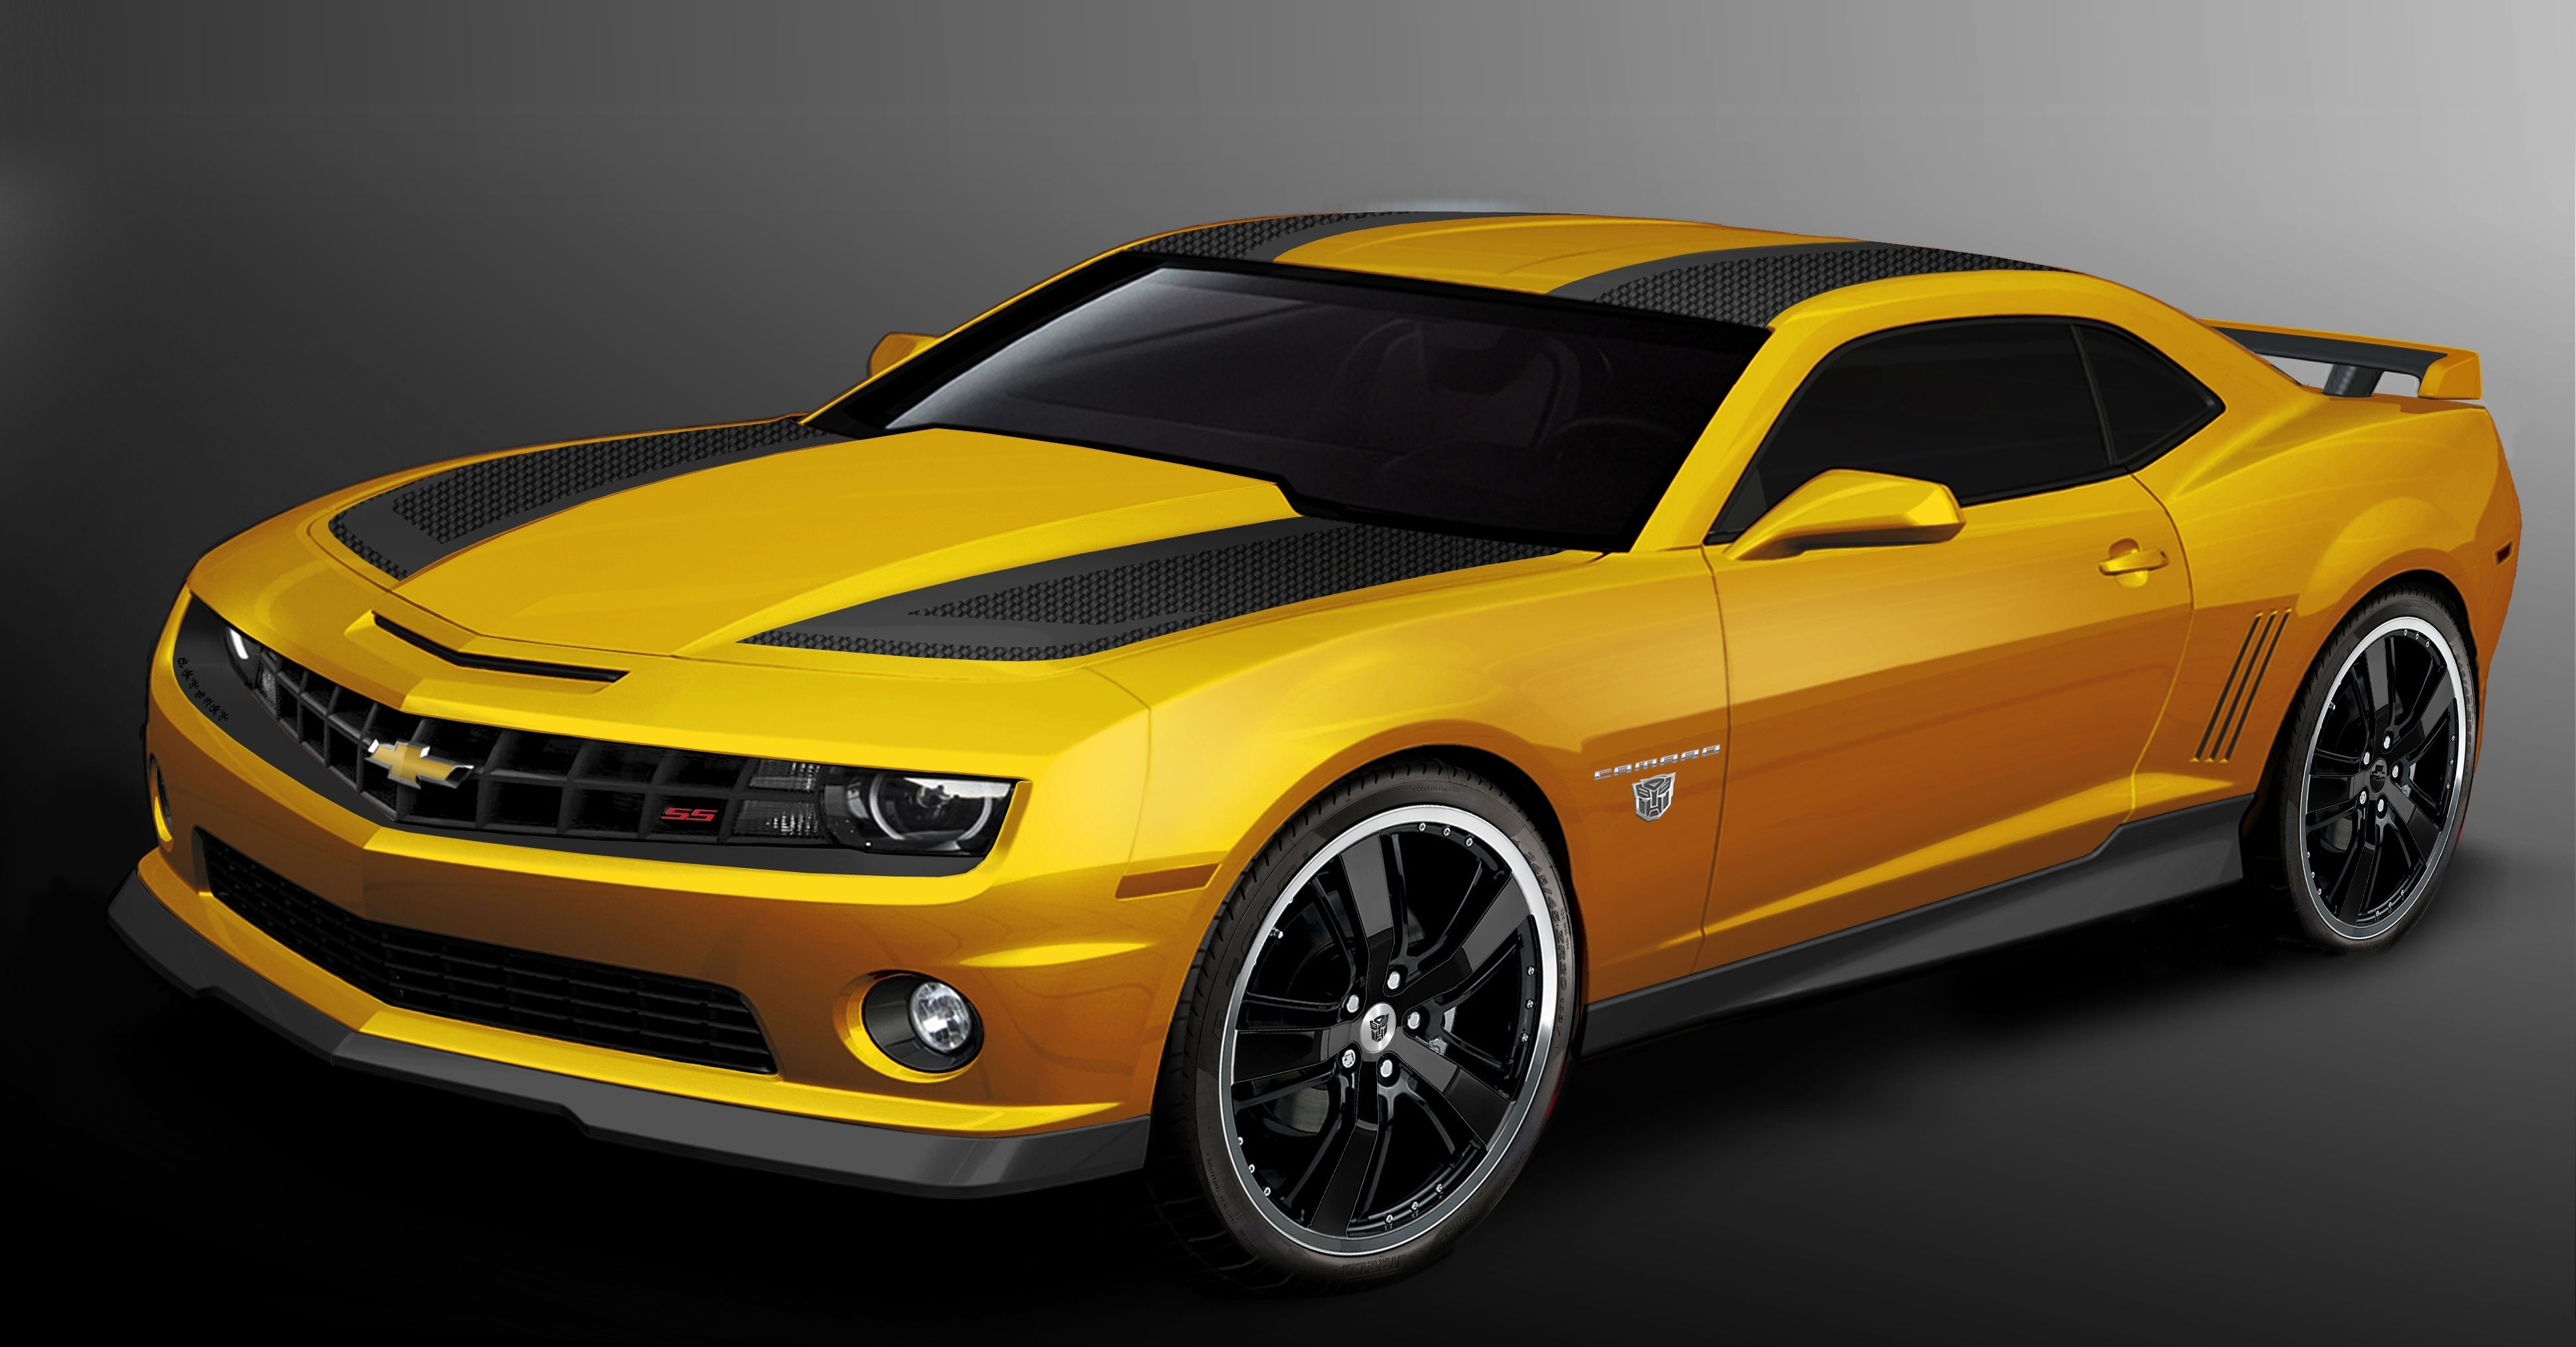 Camaro Hd Background Wallpaper 22 Chevrolet Camaro Bumblebee